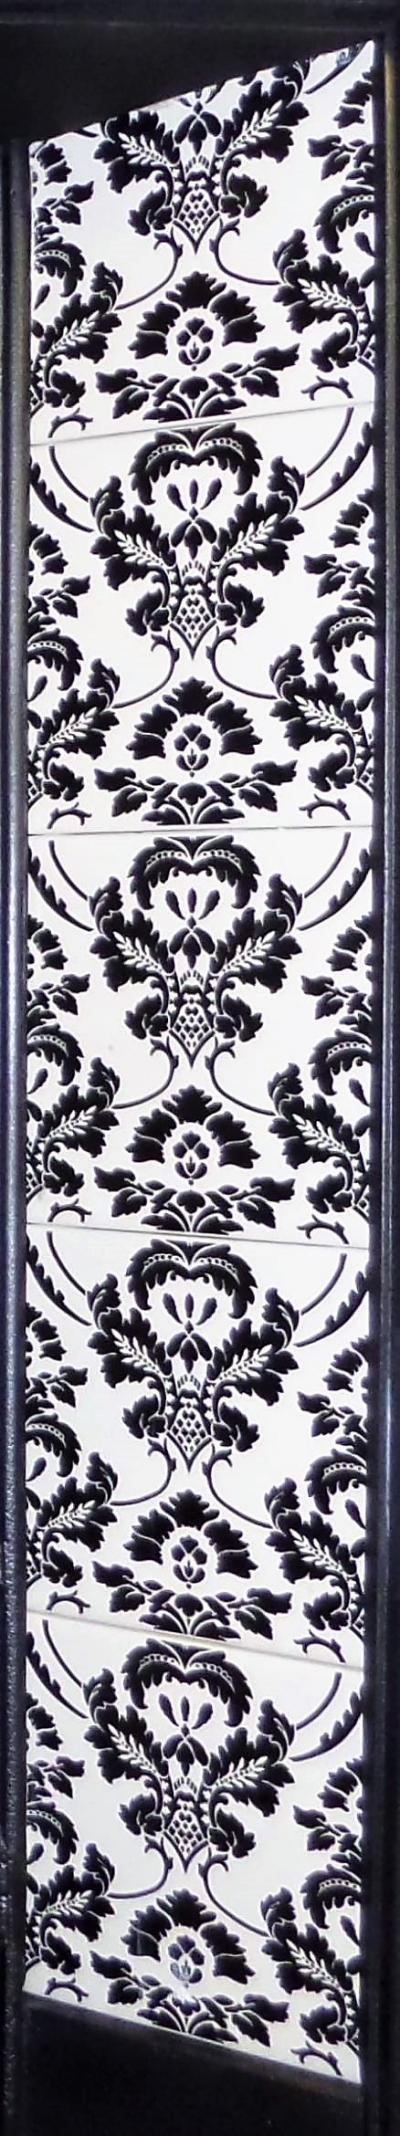 flock victorian fireplace tiles